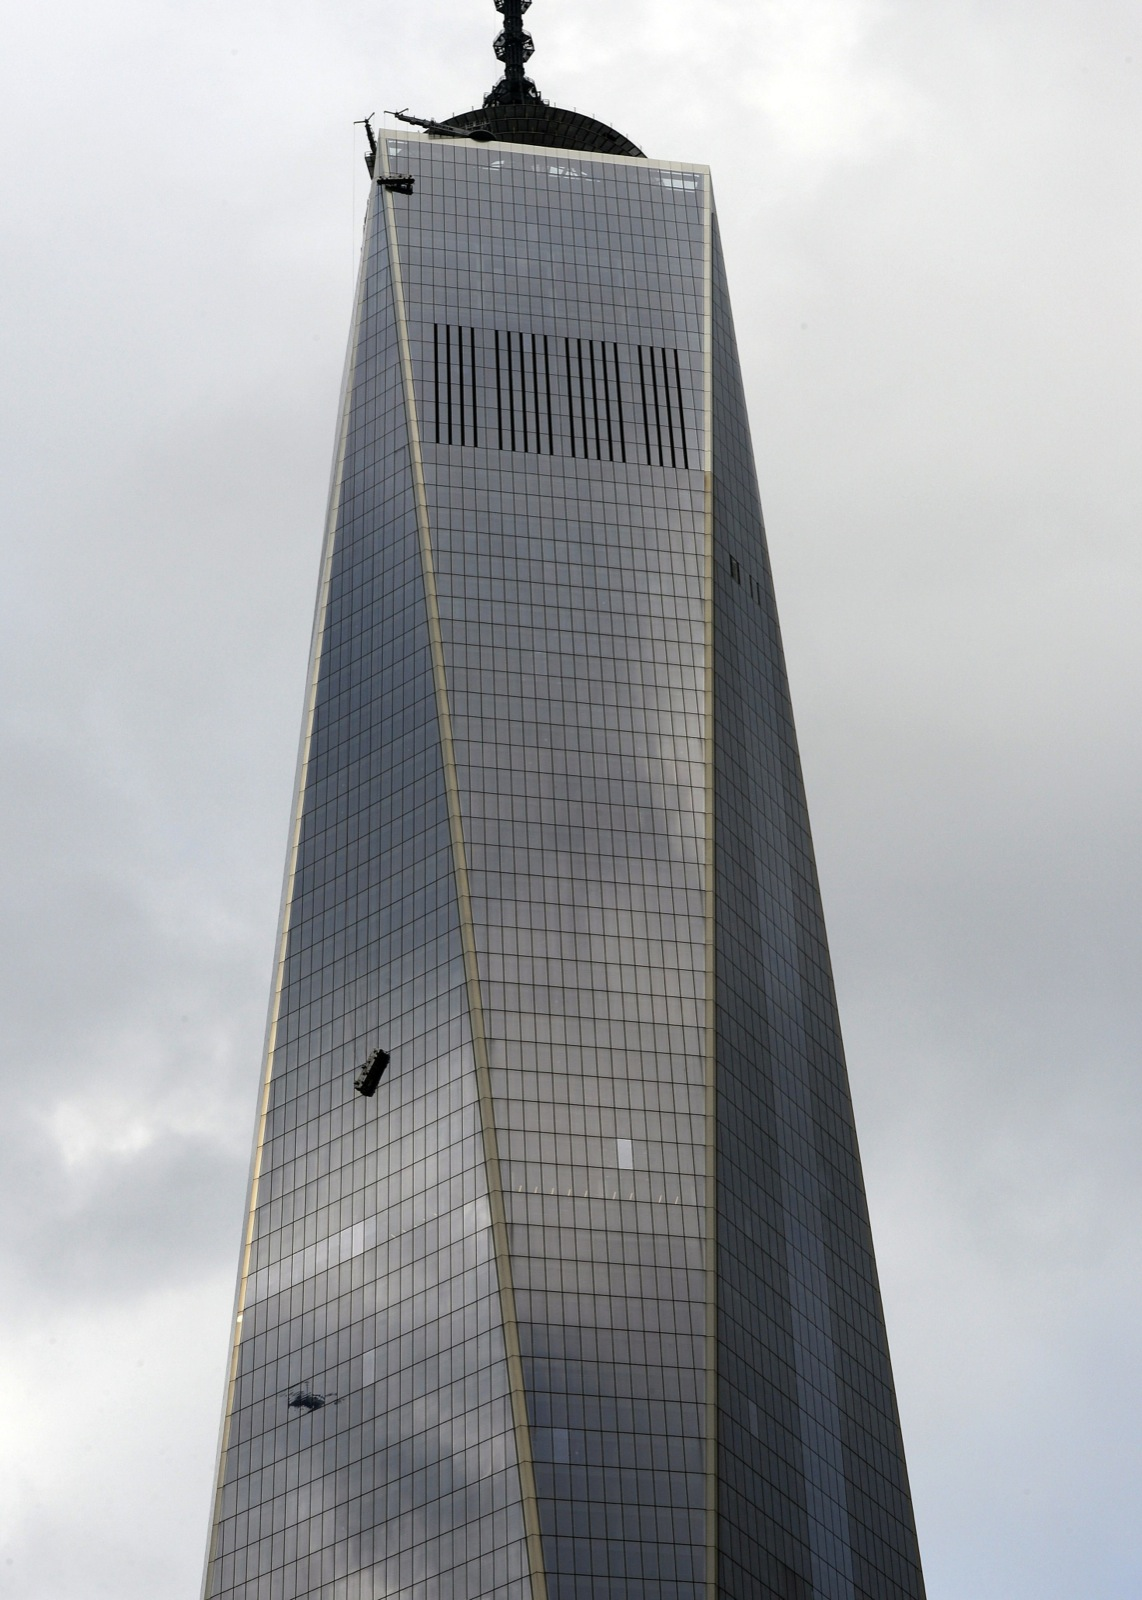 Near Disaster at WTC: In Pictures